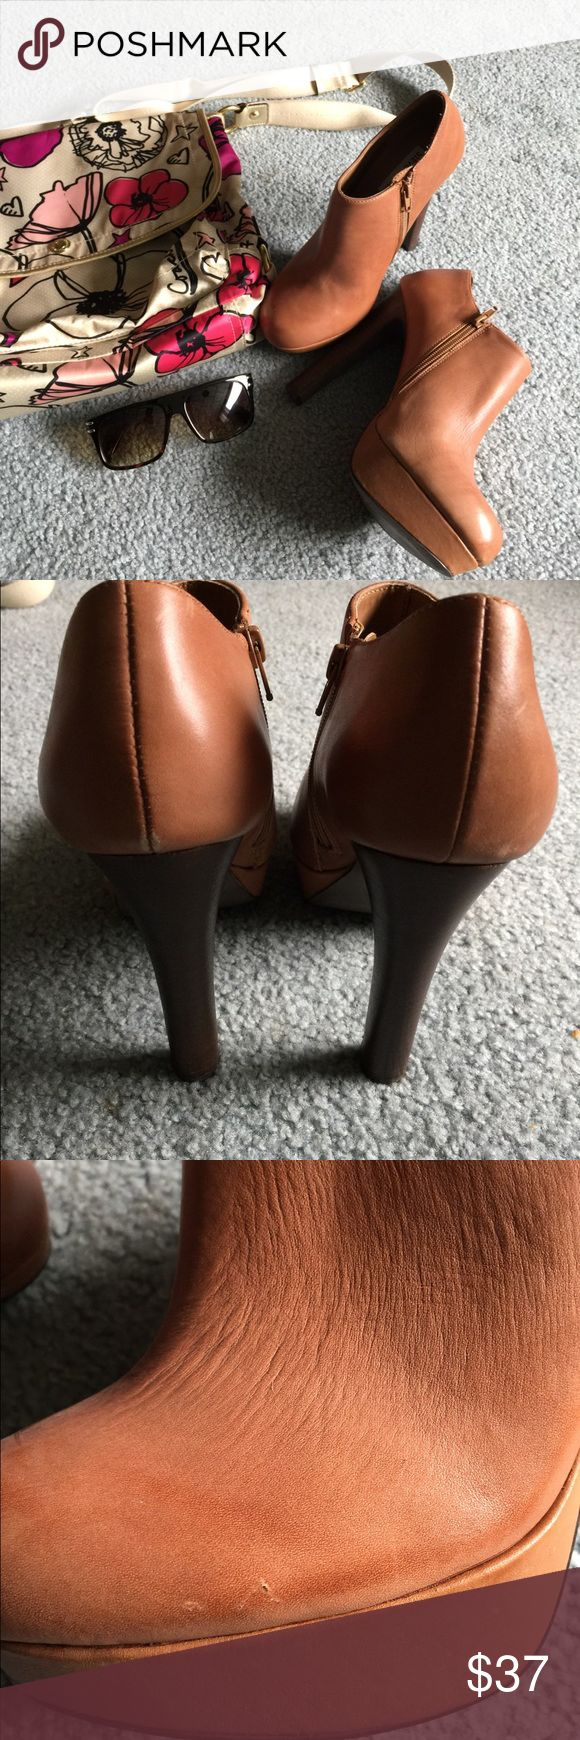 "Steve Madden Booties size 8.5M EUC Light brown ankle Steve Madden boots. Heel 5.5"". Some light scuffs as shown in pics. Very cute looking boots. Steve Madden Shoes Ankle Boots & Booties"